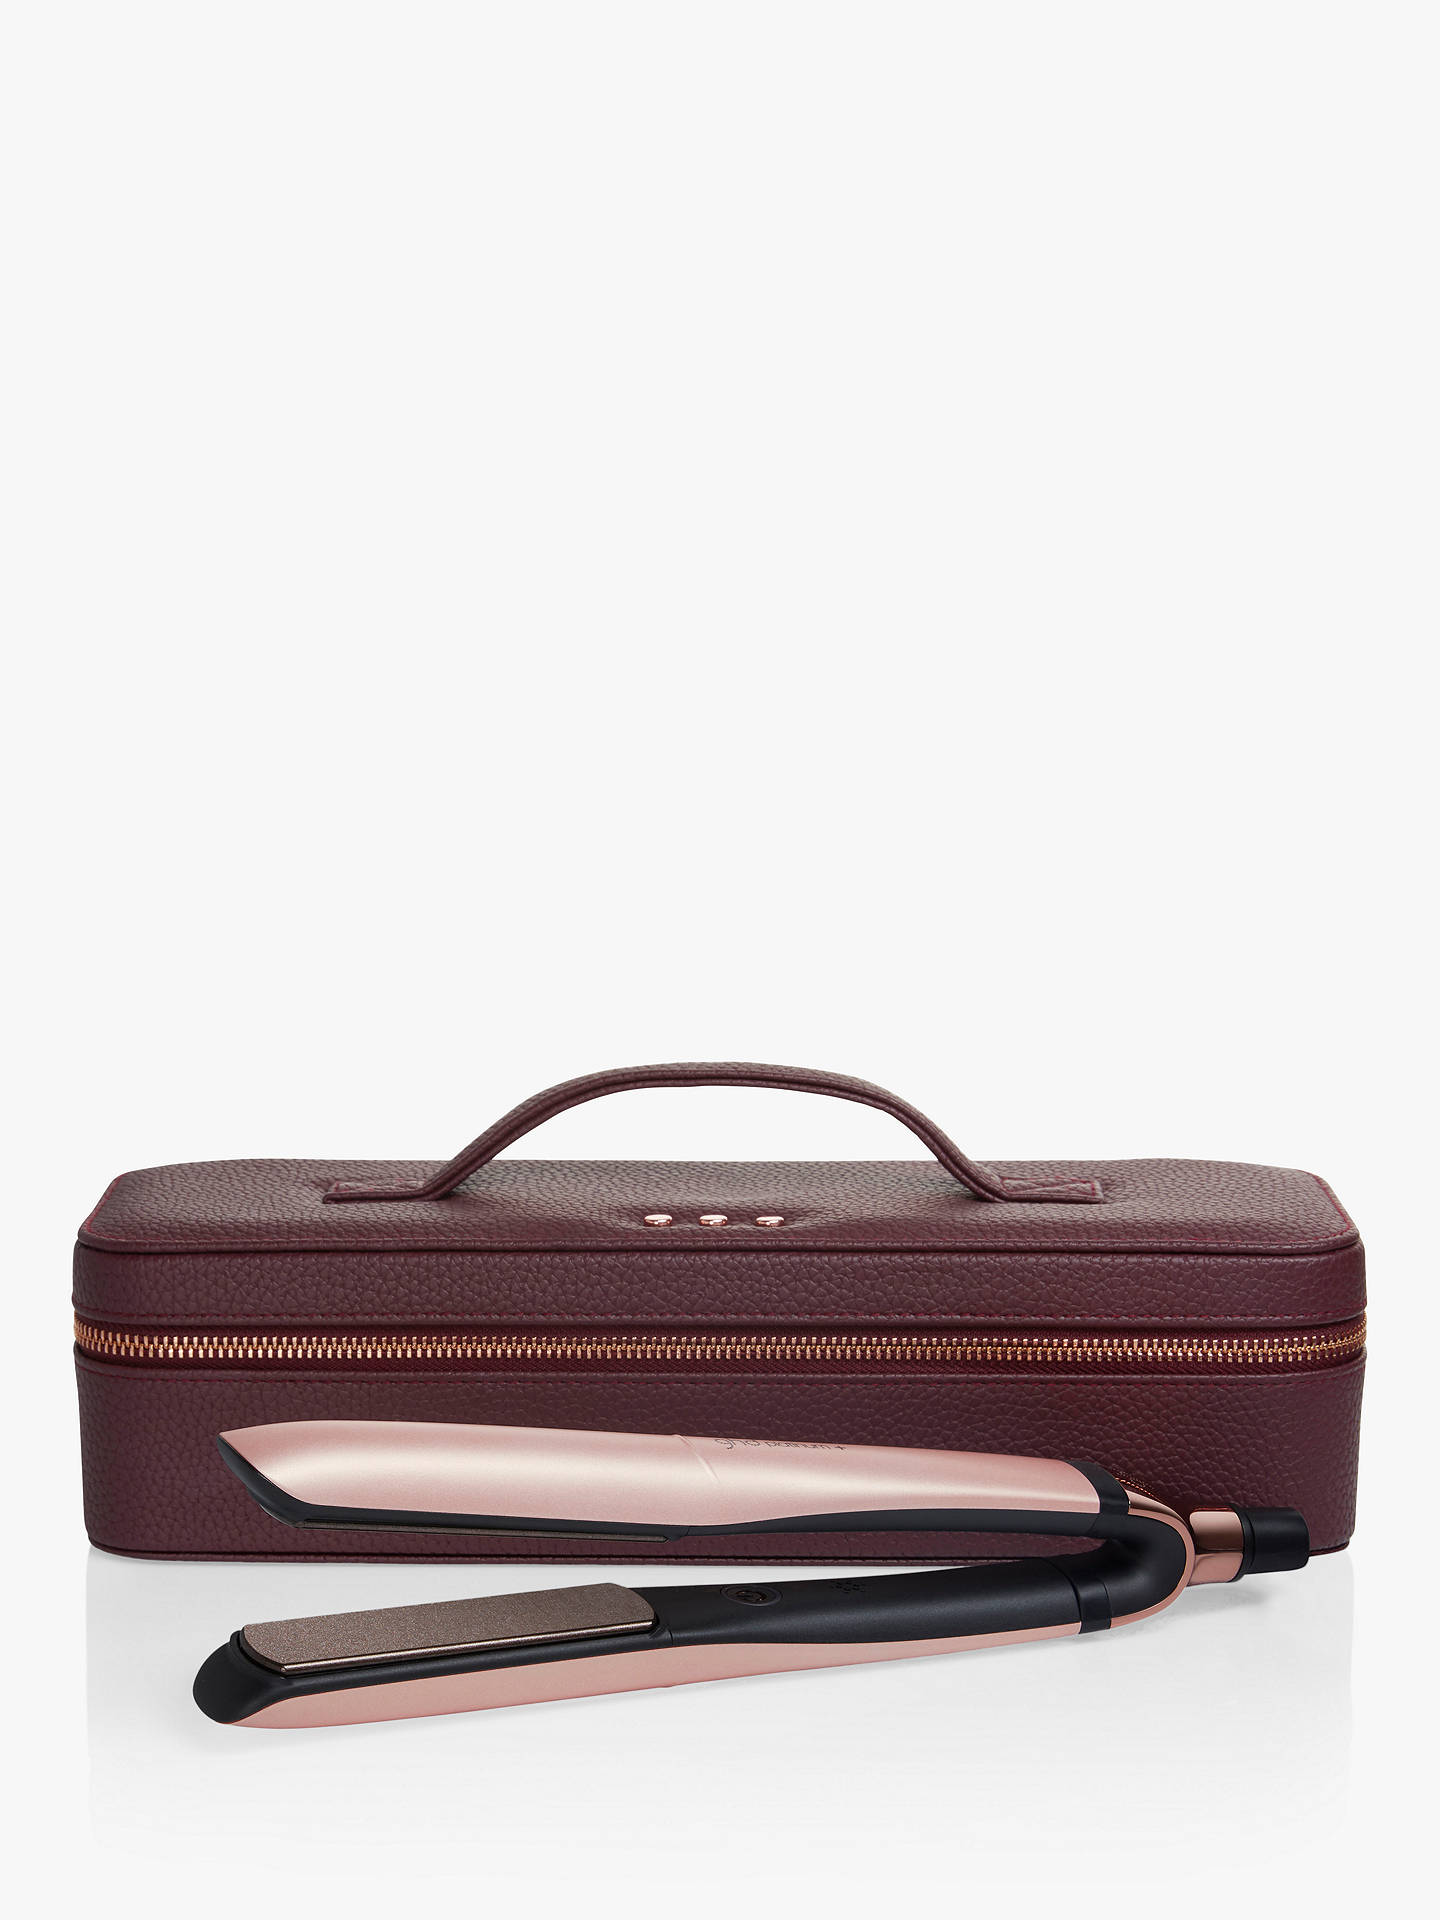 Buy ghd Platinum+ Straighteners Limited Edition Gift Set, Rose Gold Online at johnlewis.com